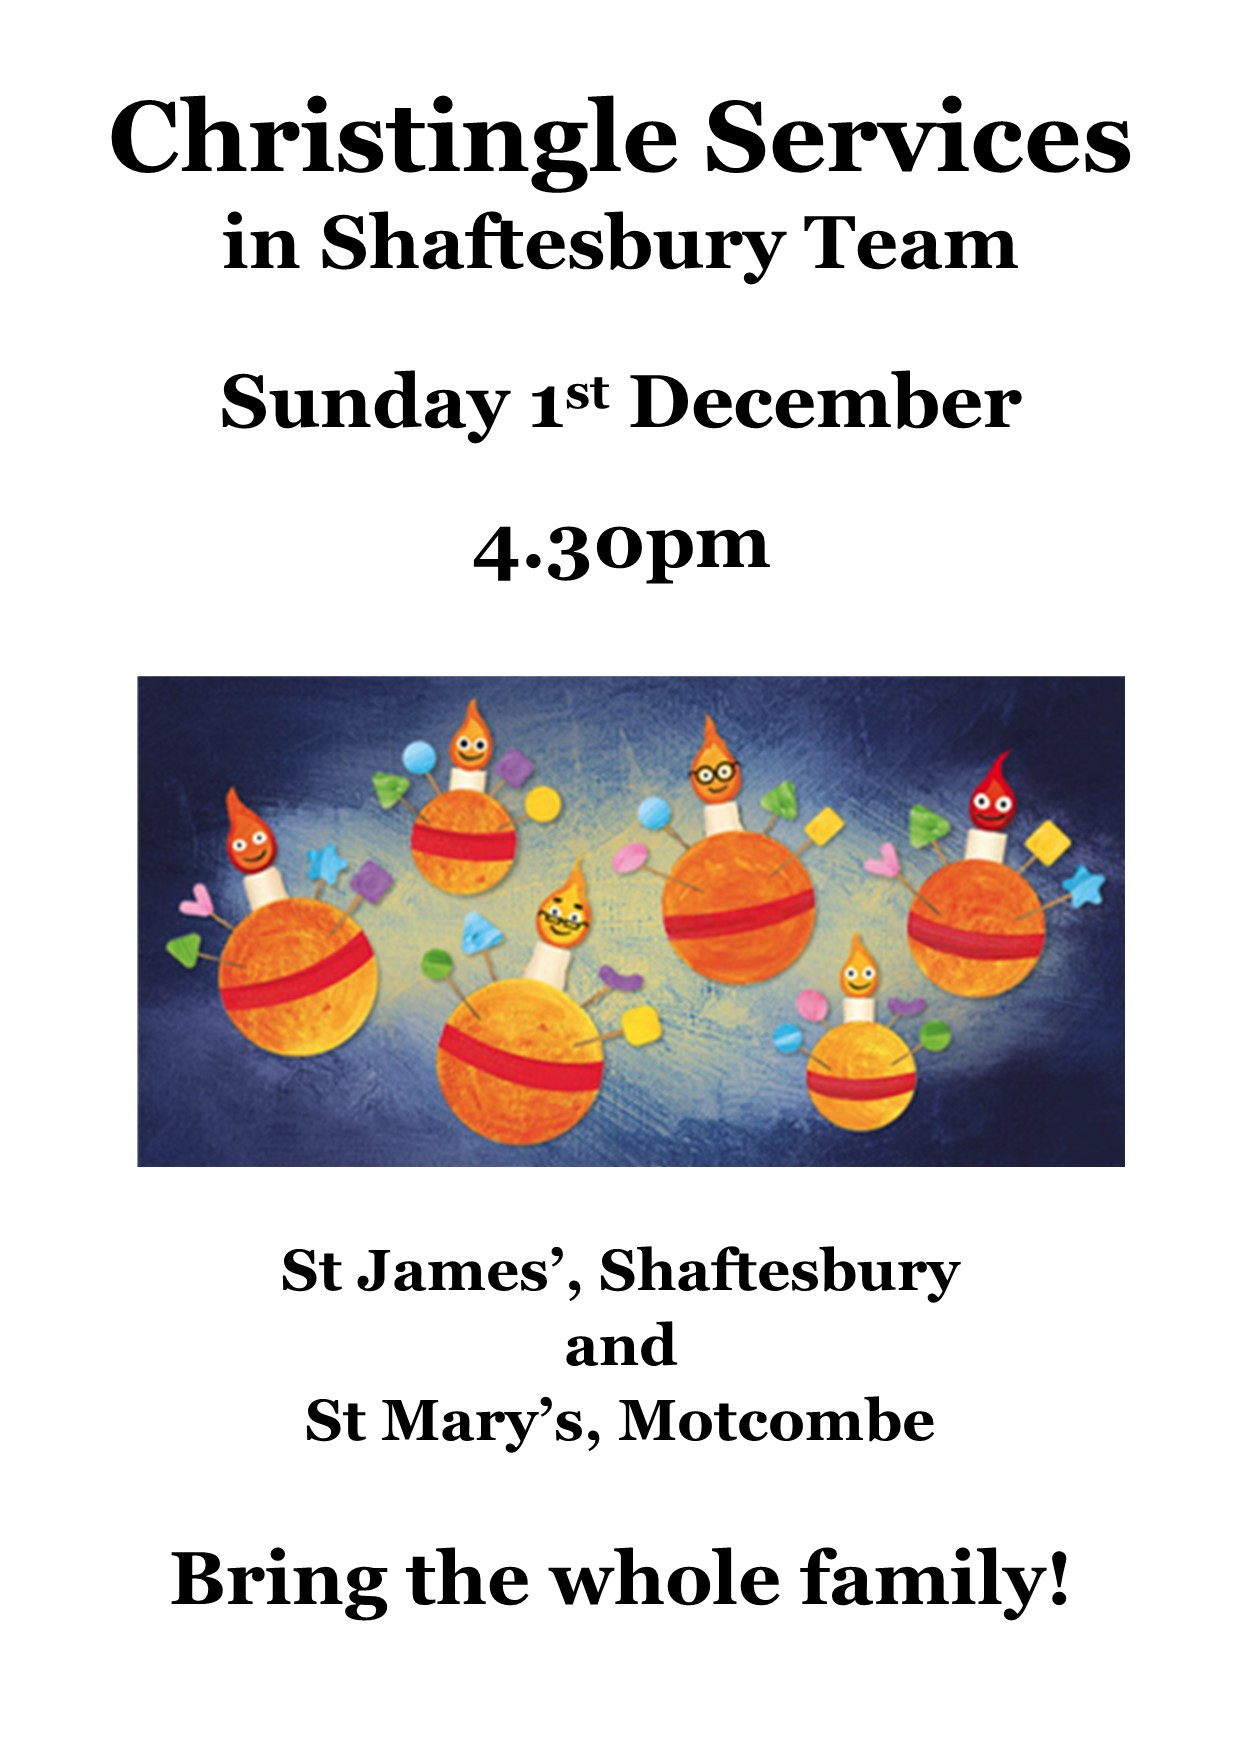 Christingle Services in Shaftesbury Team – 1st December